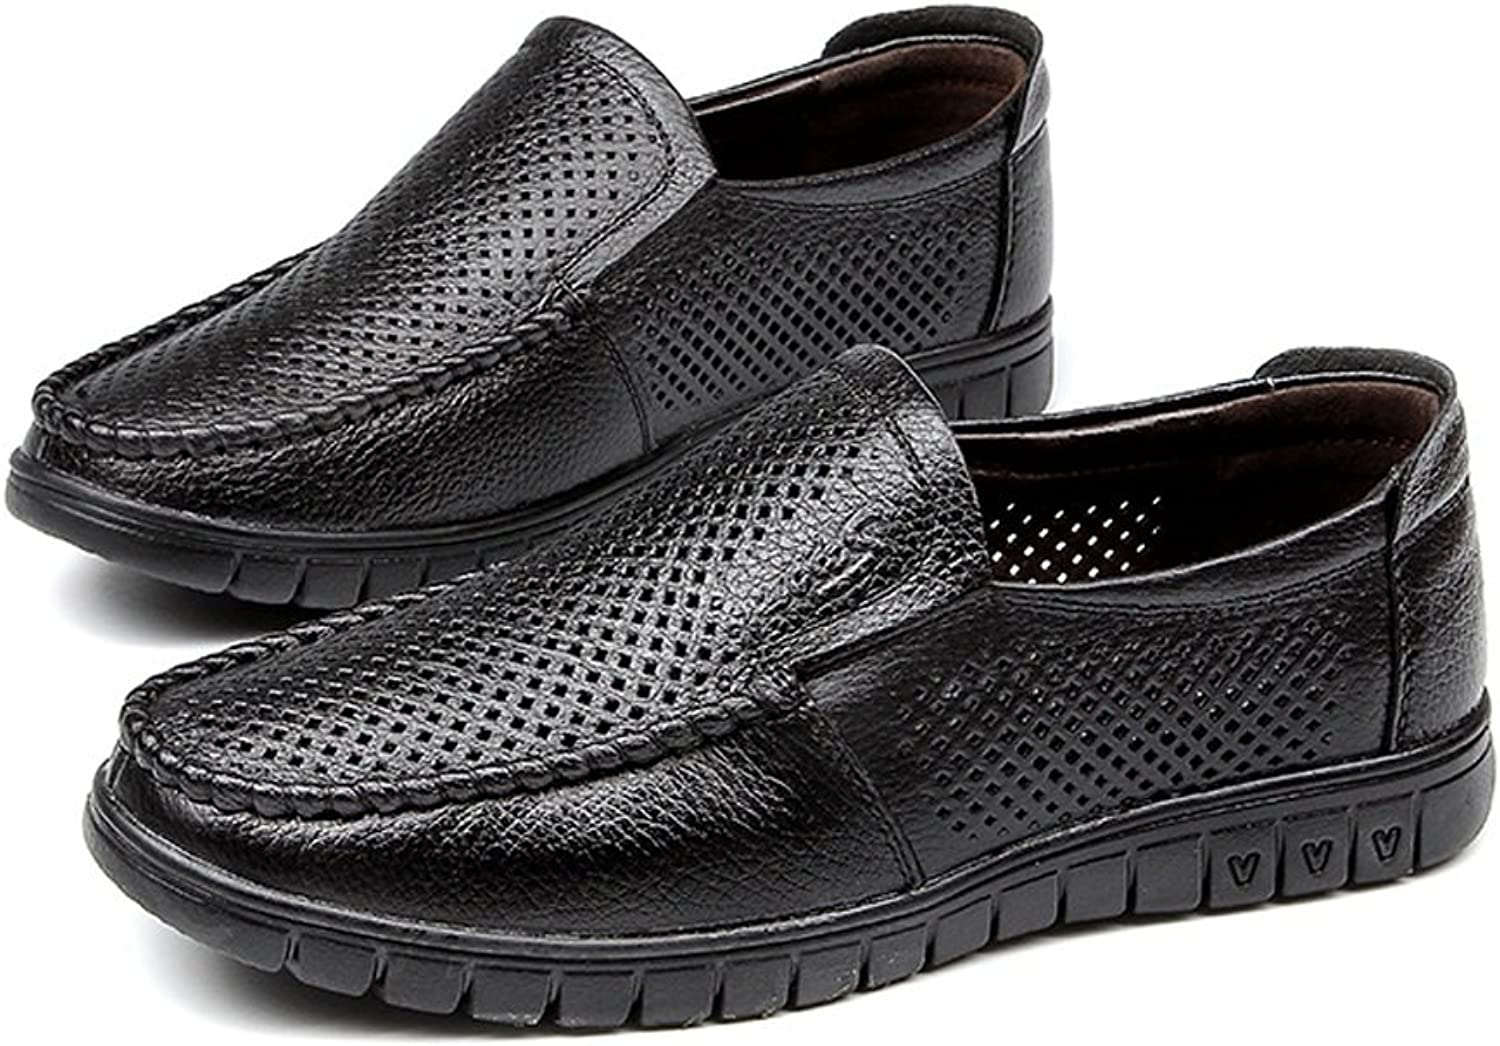 CHENXD shoes, Men's Classic Genuine Leather Soft Sole shoes Breathable Perforation Upper Slip-on Flat Loafer